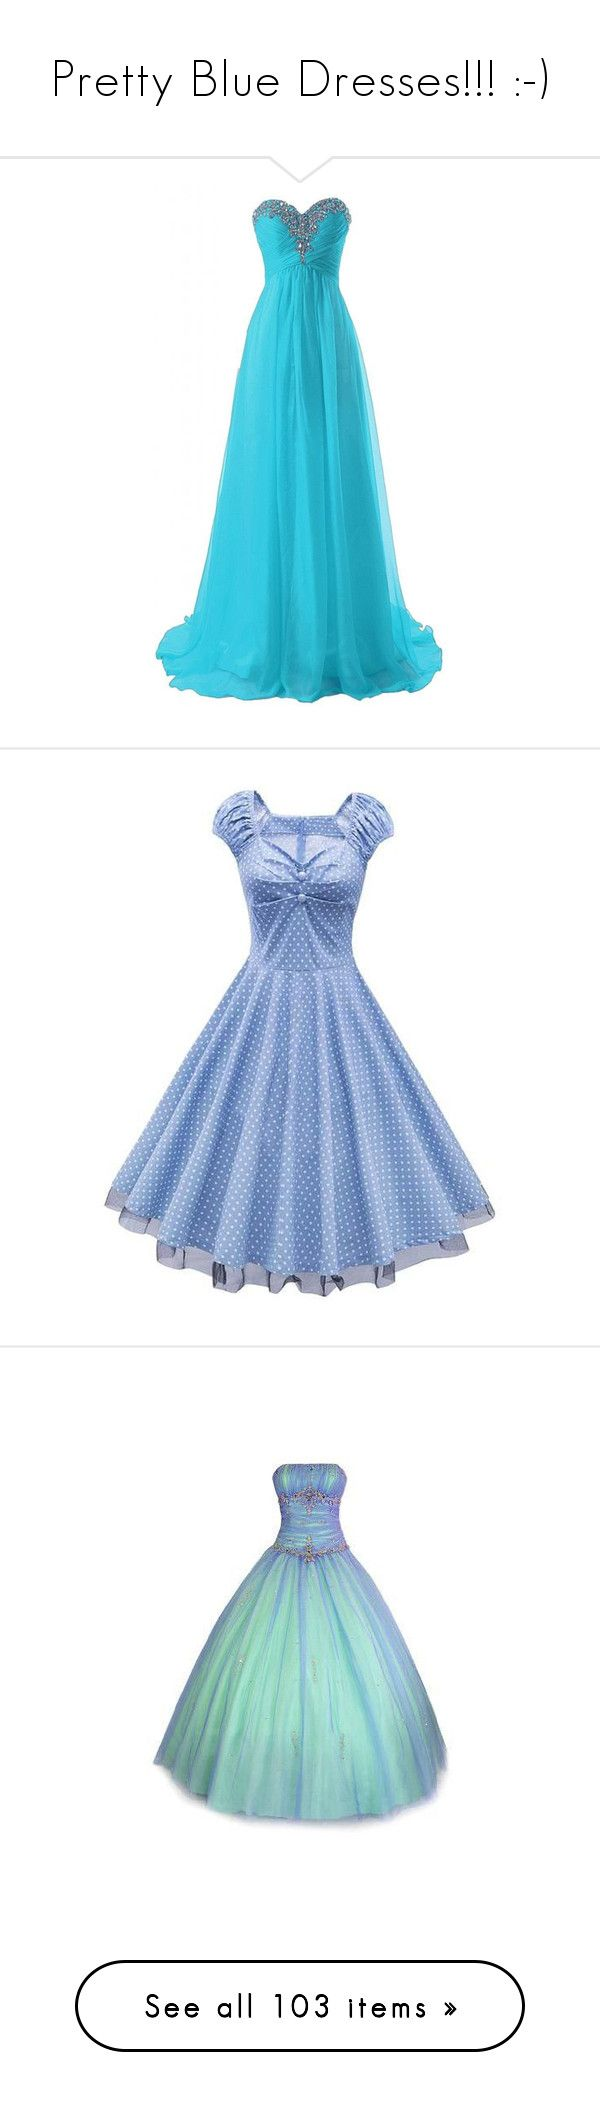 Pretty Blue Dresses!!! :-)\